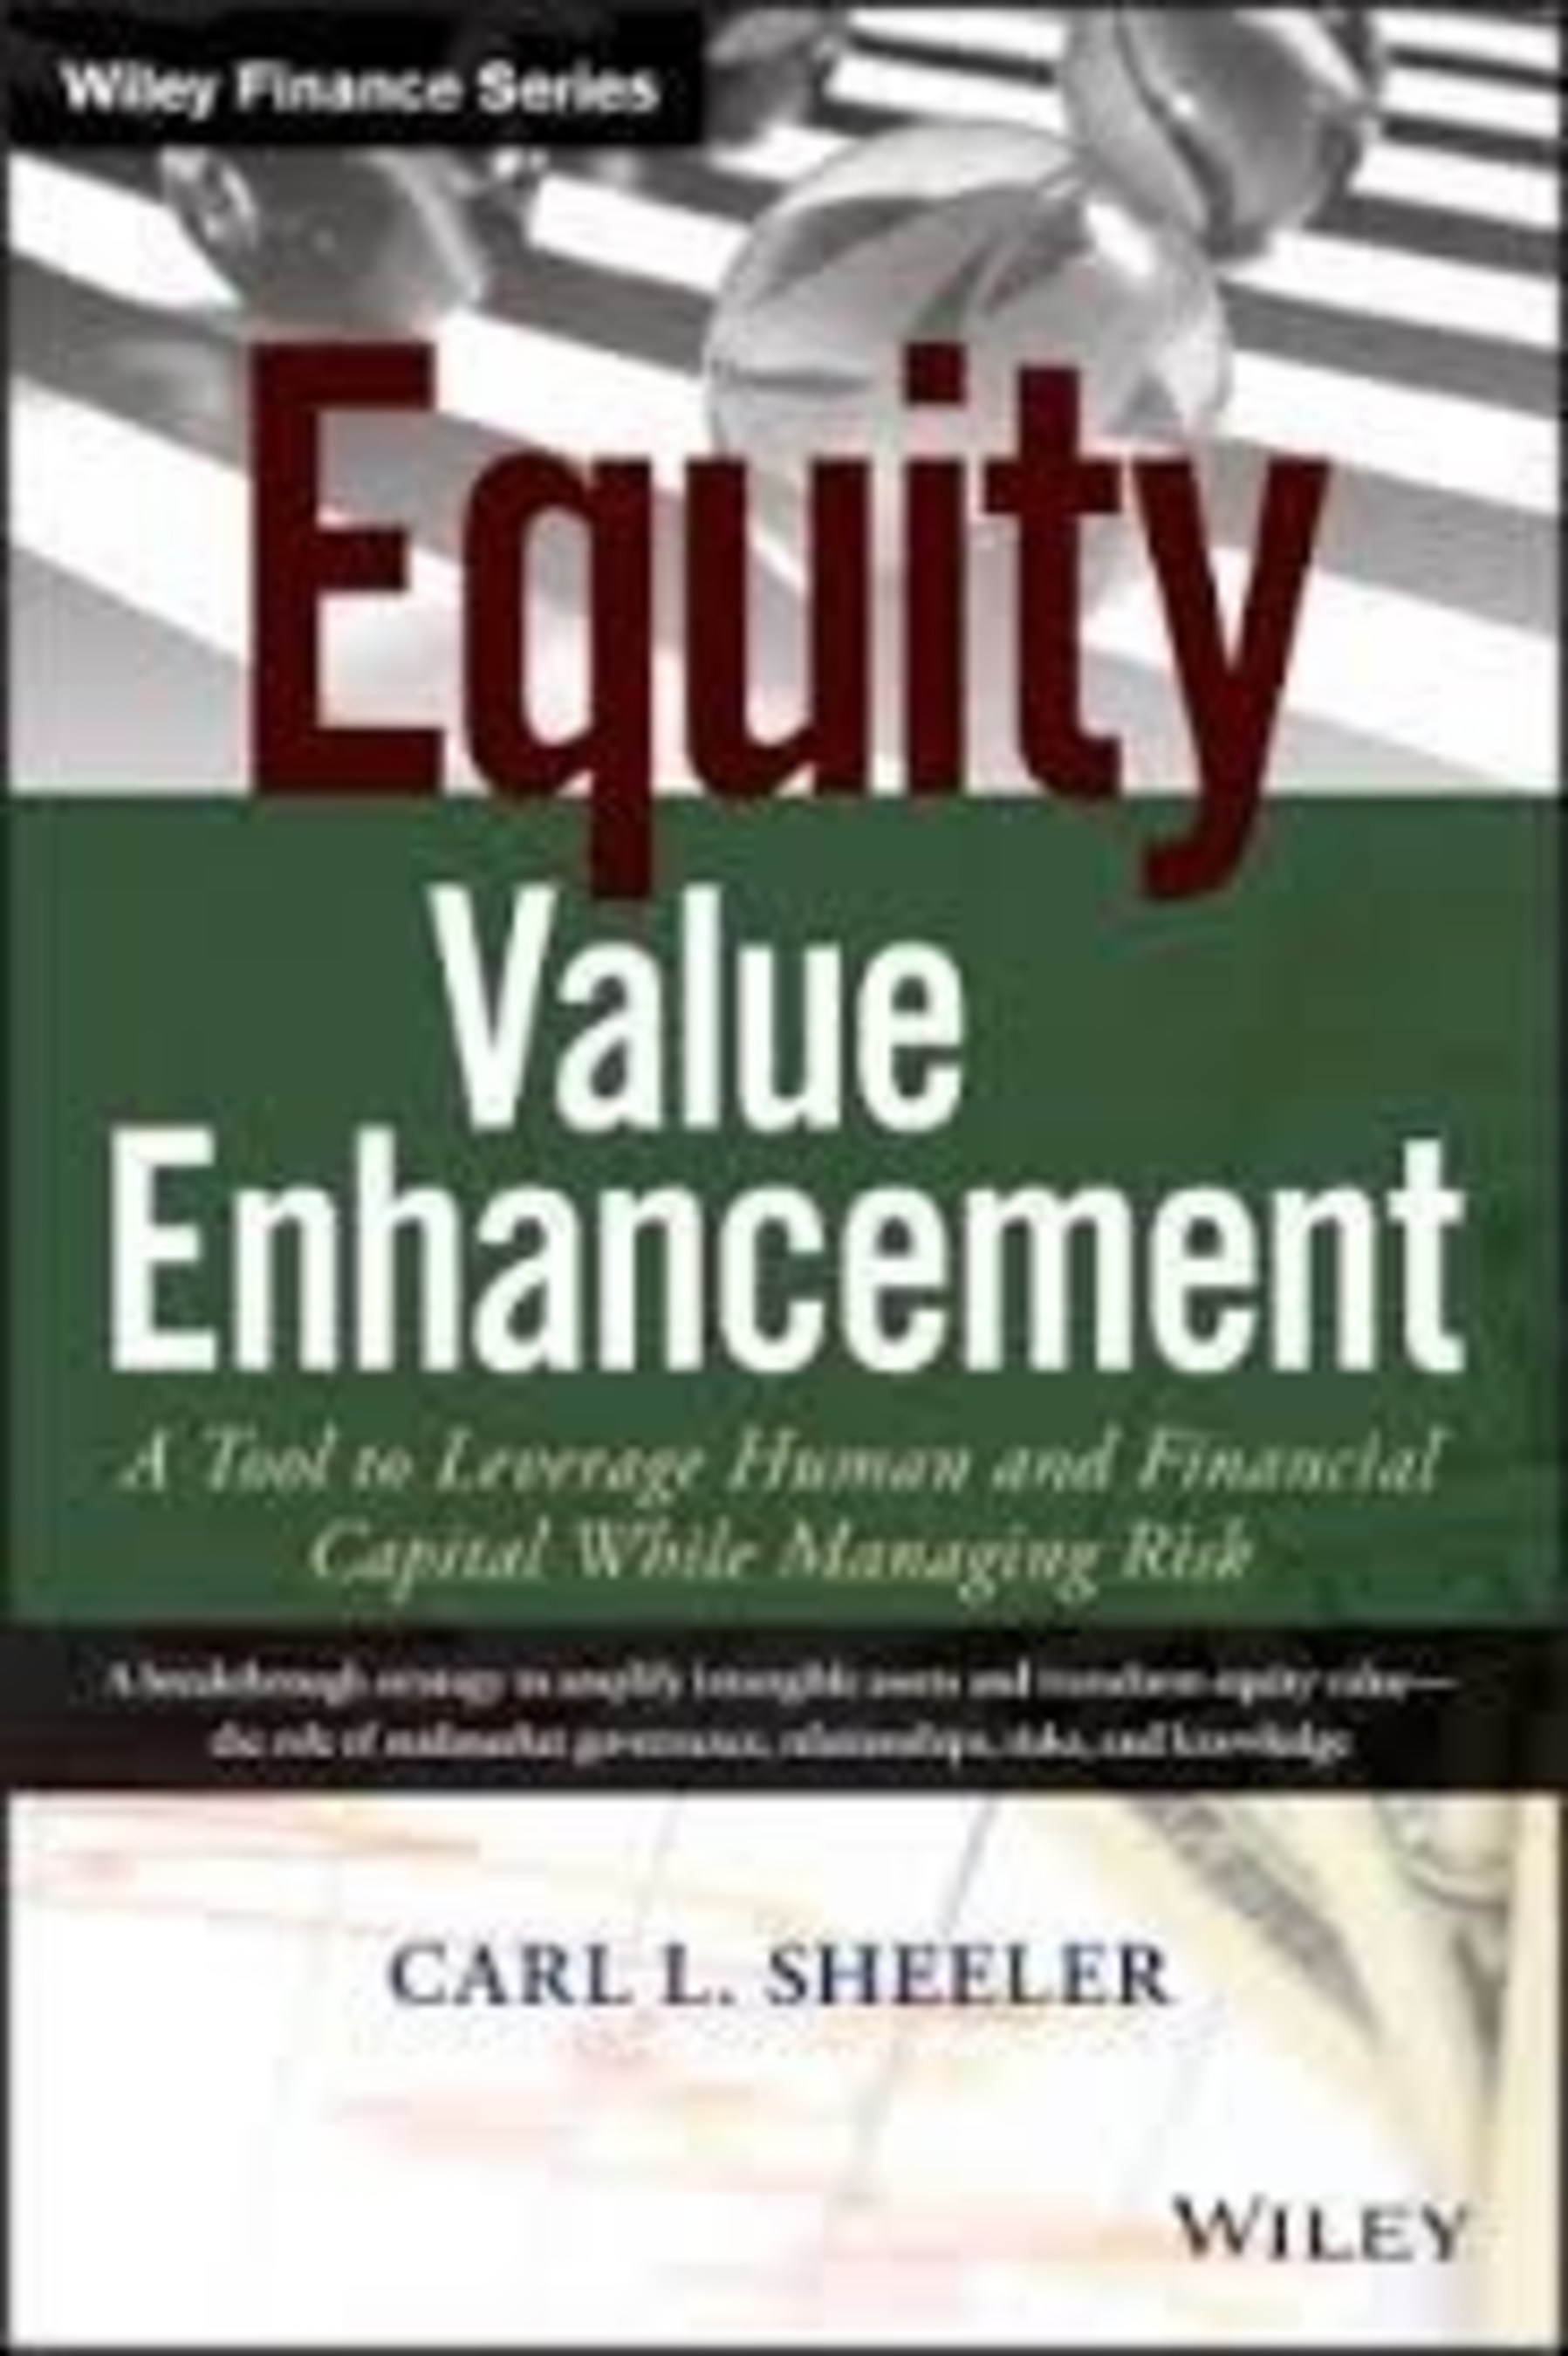 Equity Value Enhancement Book